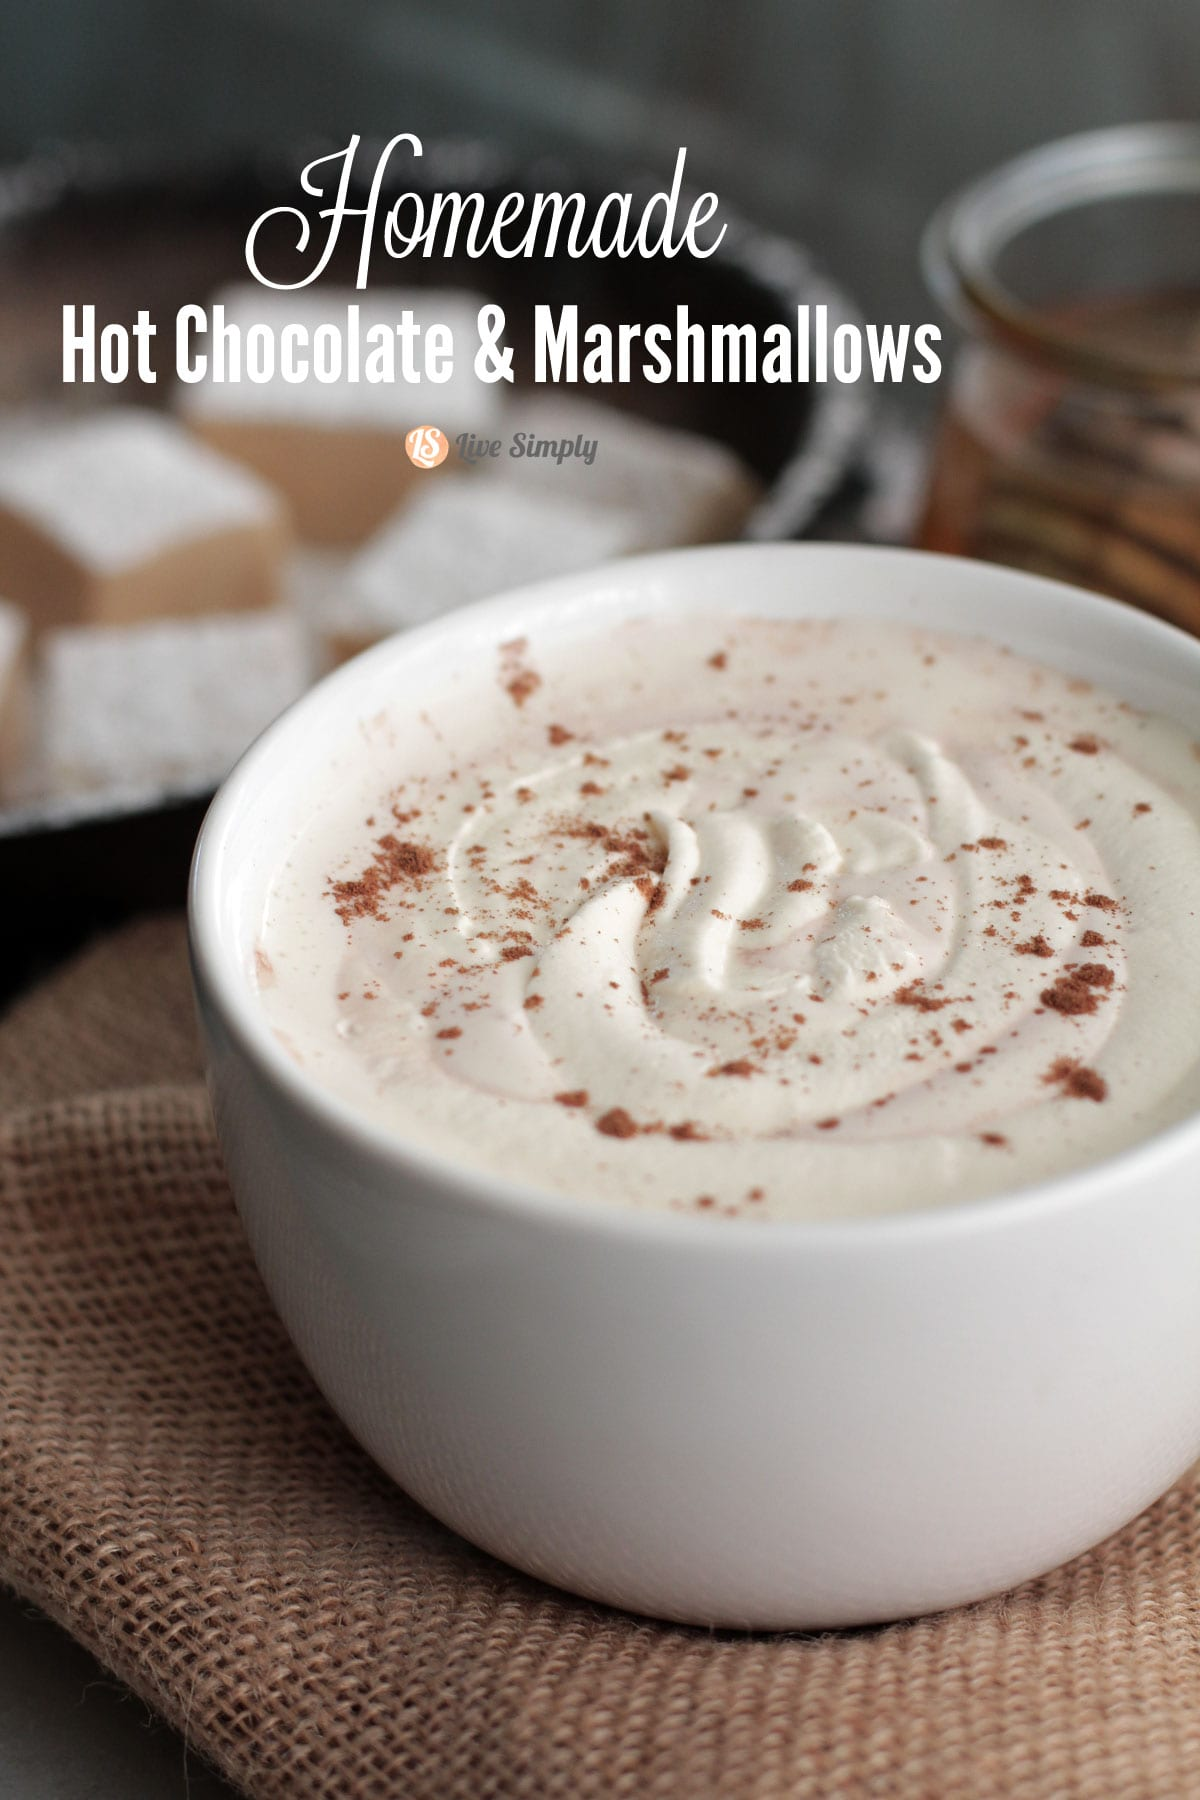 Homemade Hot Chocolate and Marshmallows - Live Simply